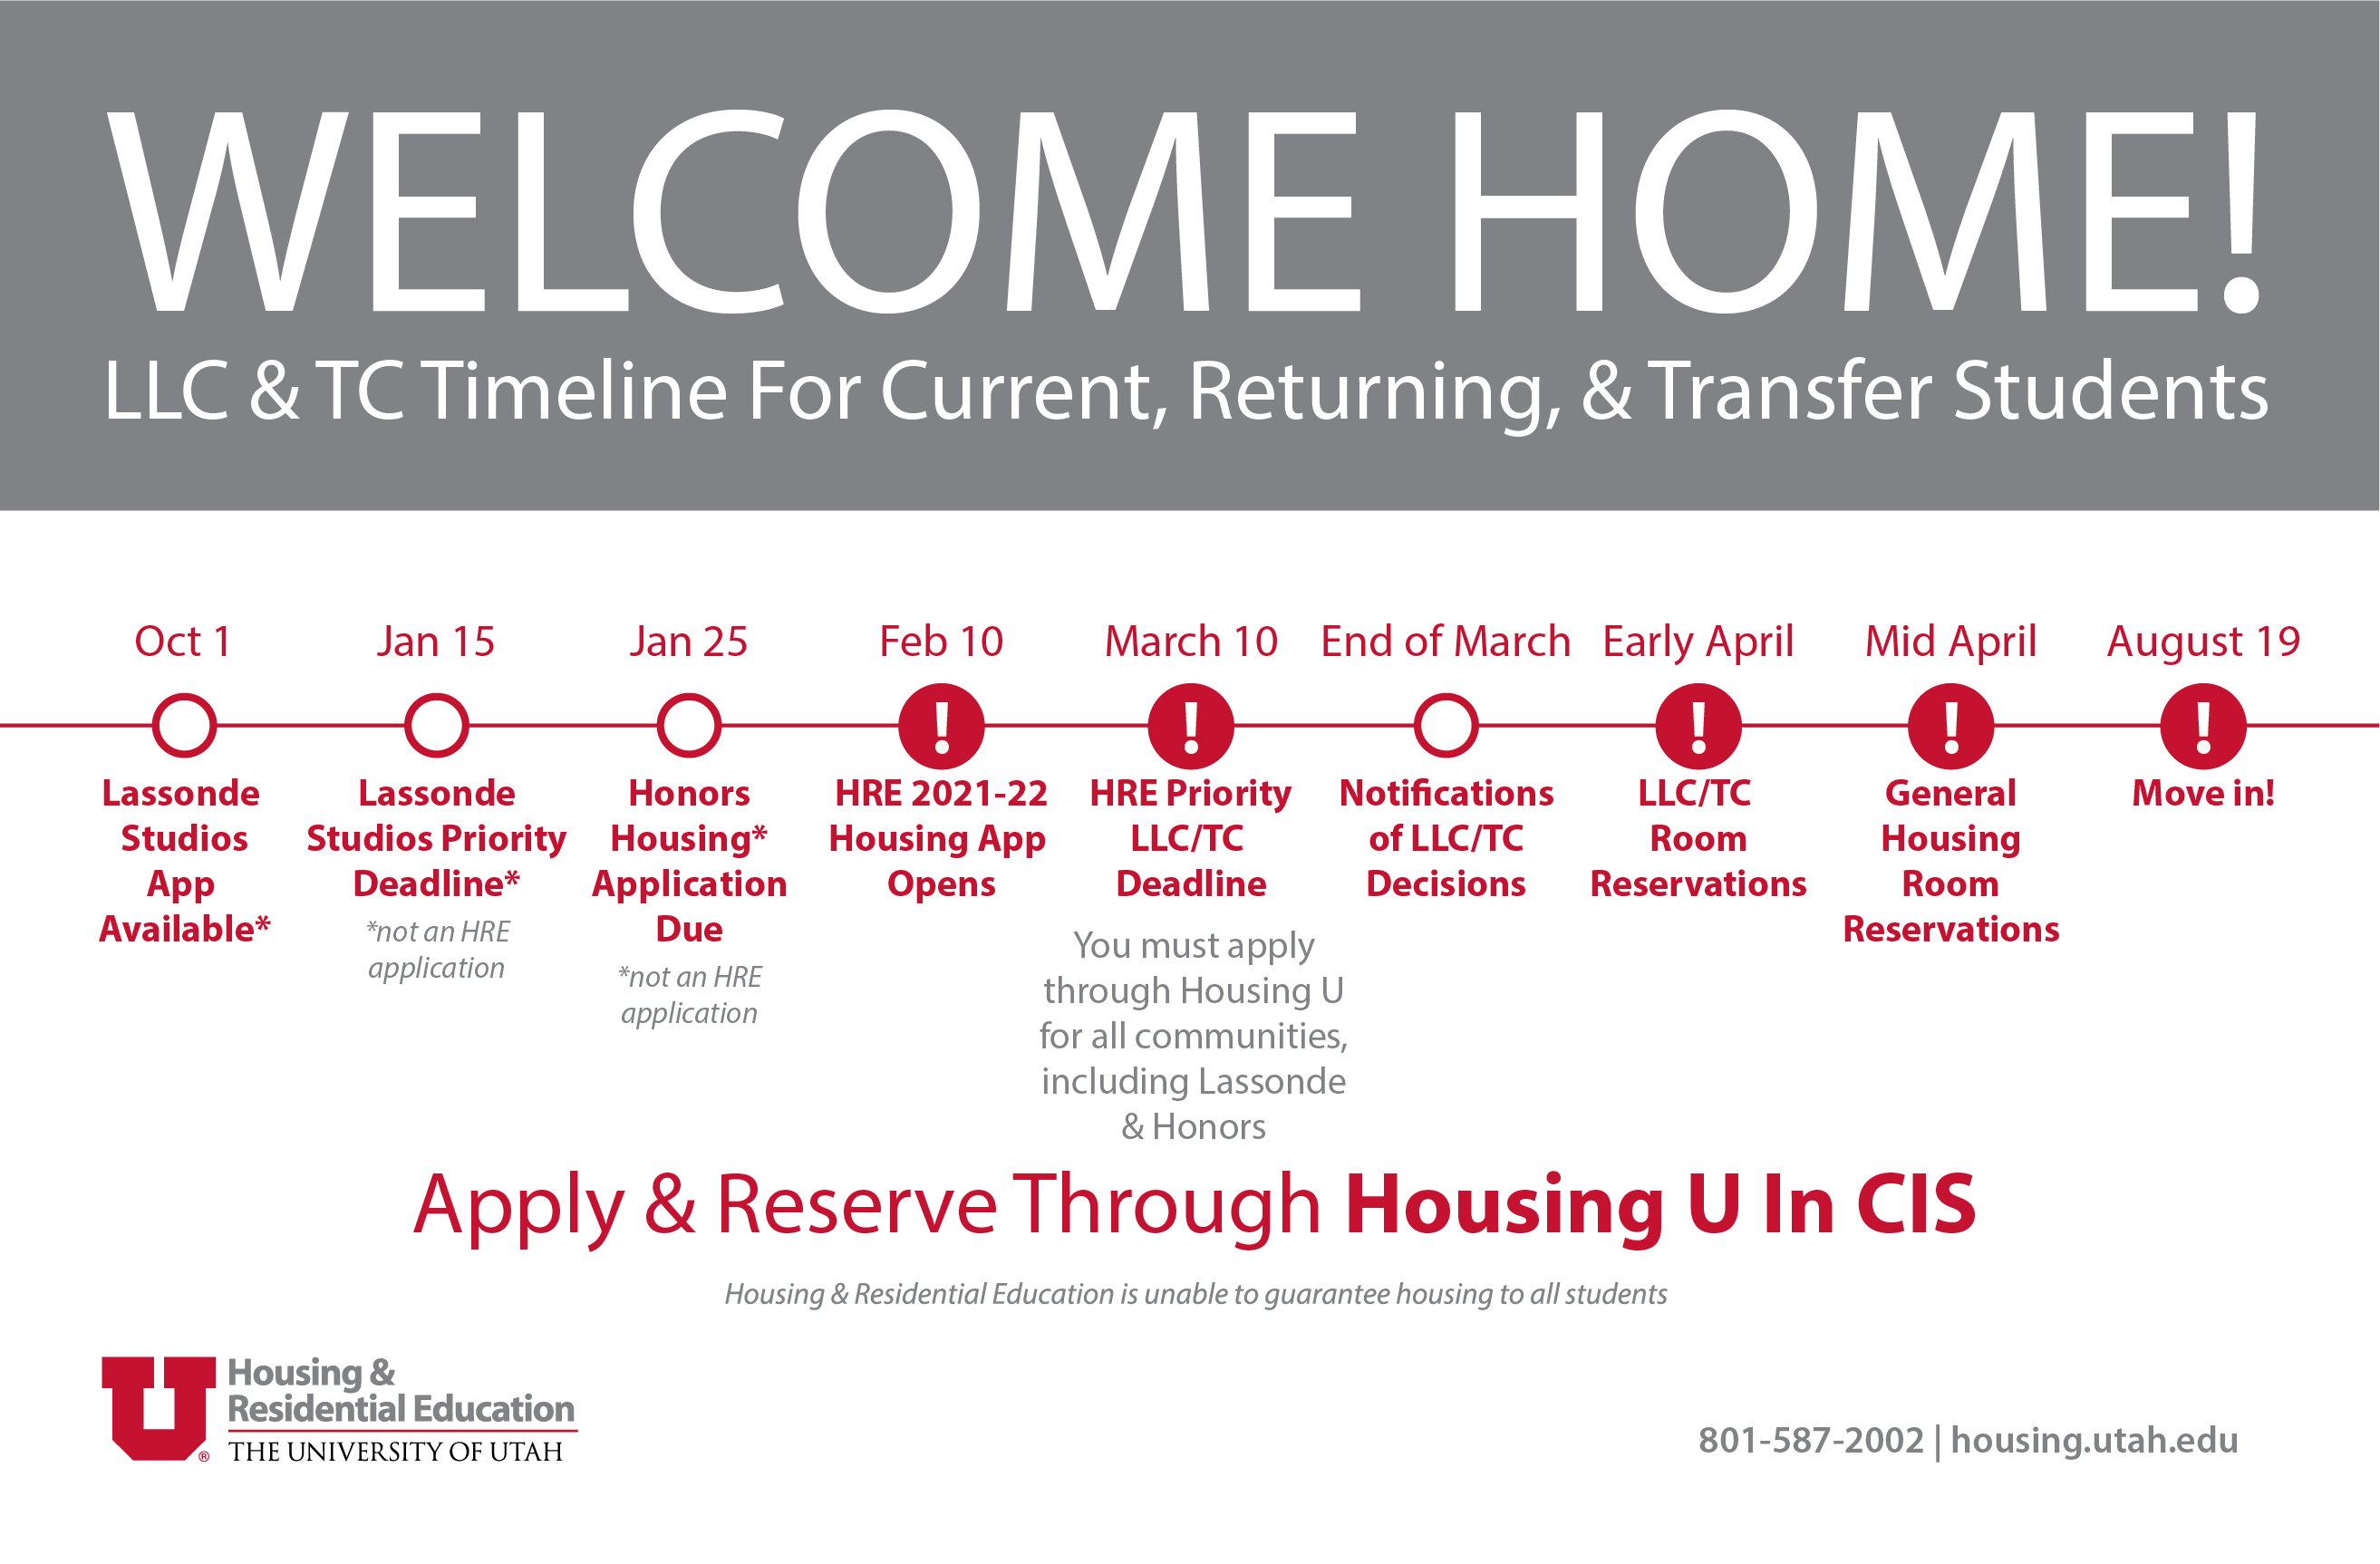 Welcome Home! LLC & TC Timeline For Current, Returning, & Transfer Students